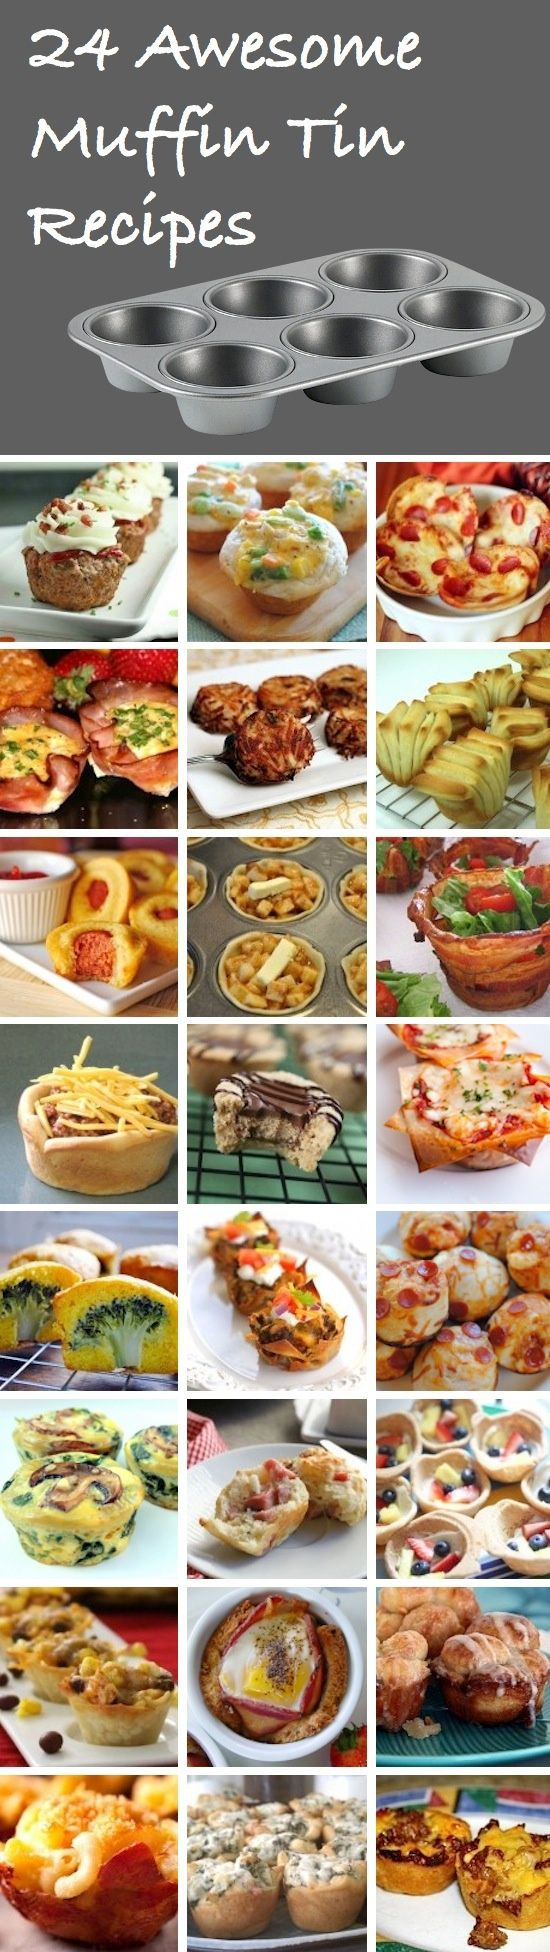 muffin tin recipes. Fun Food